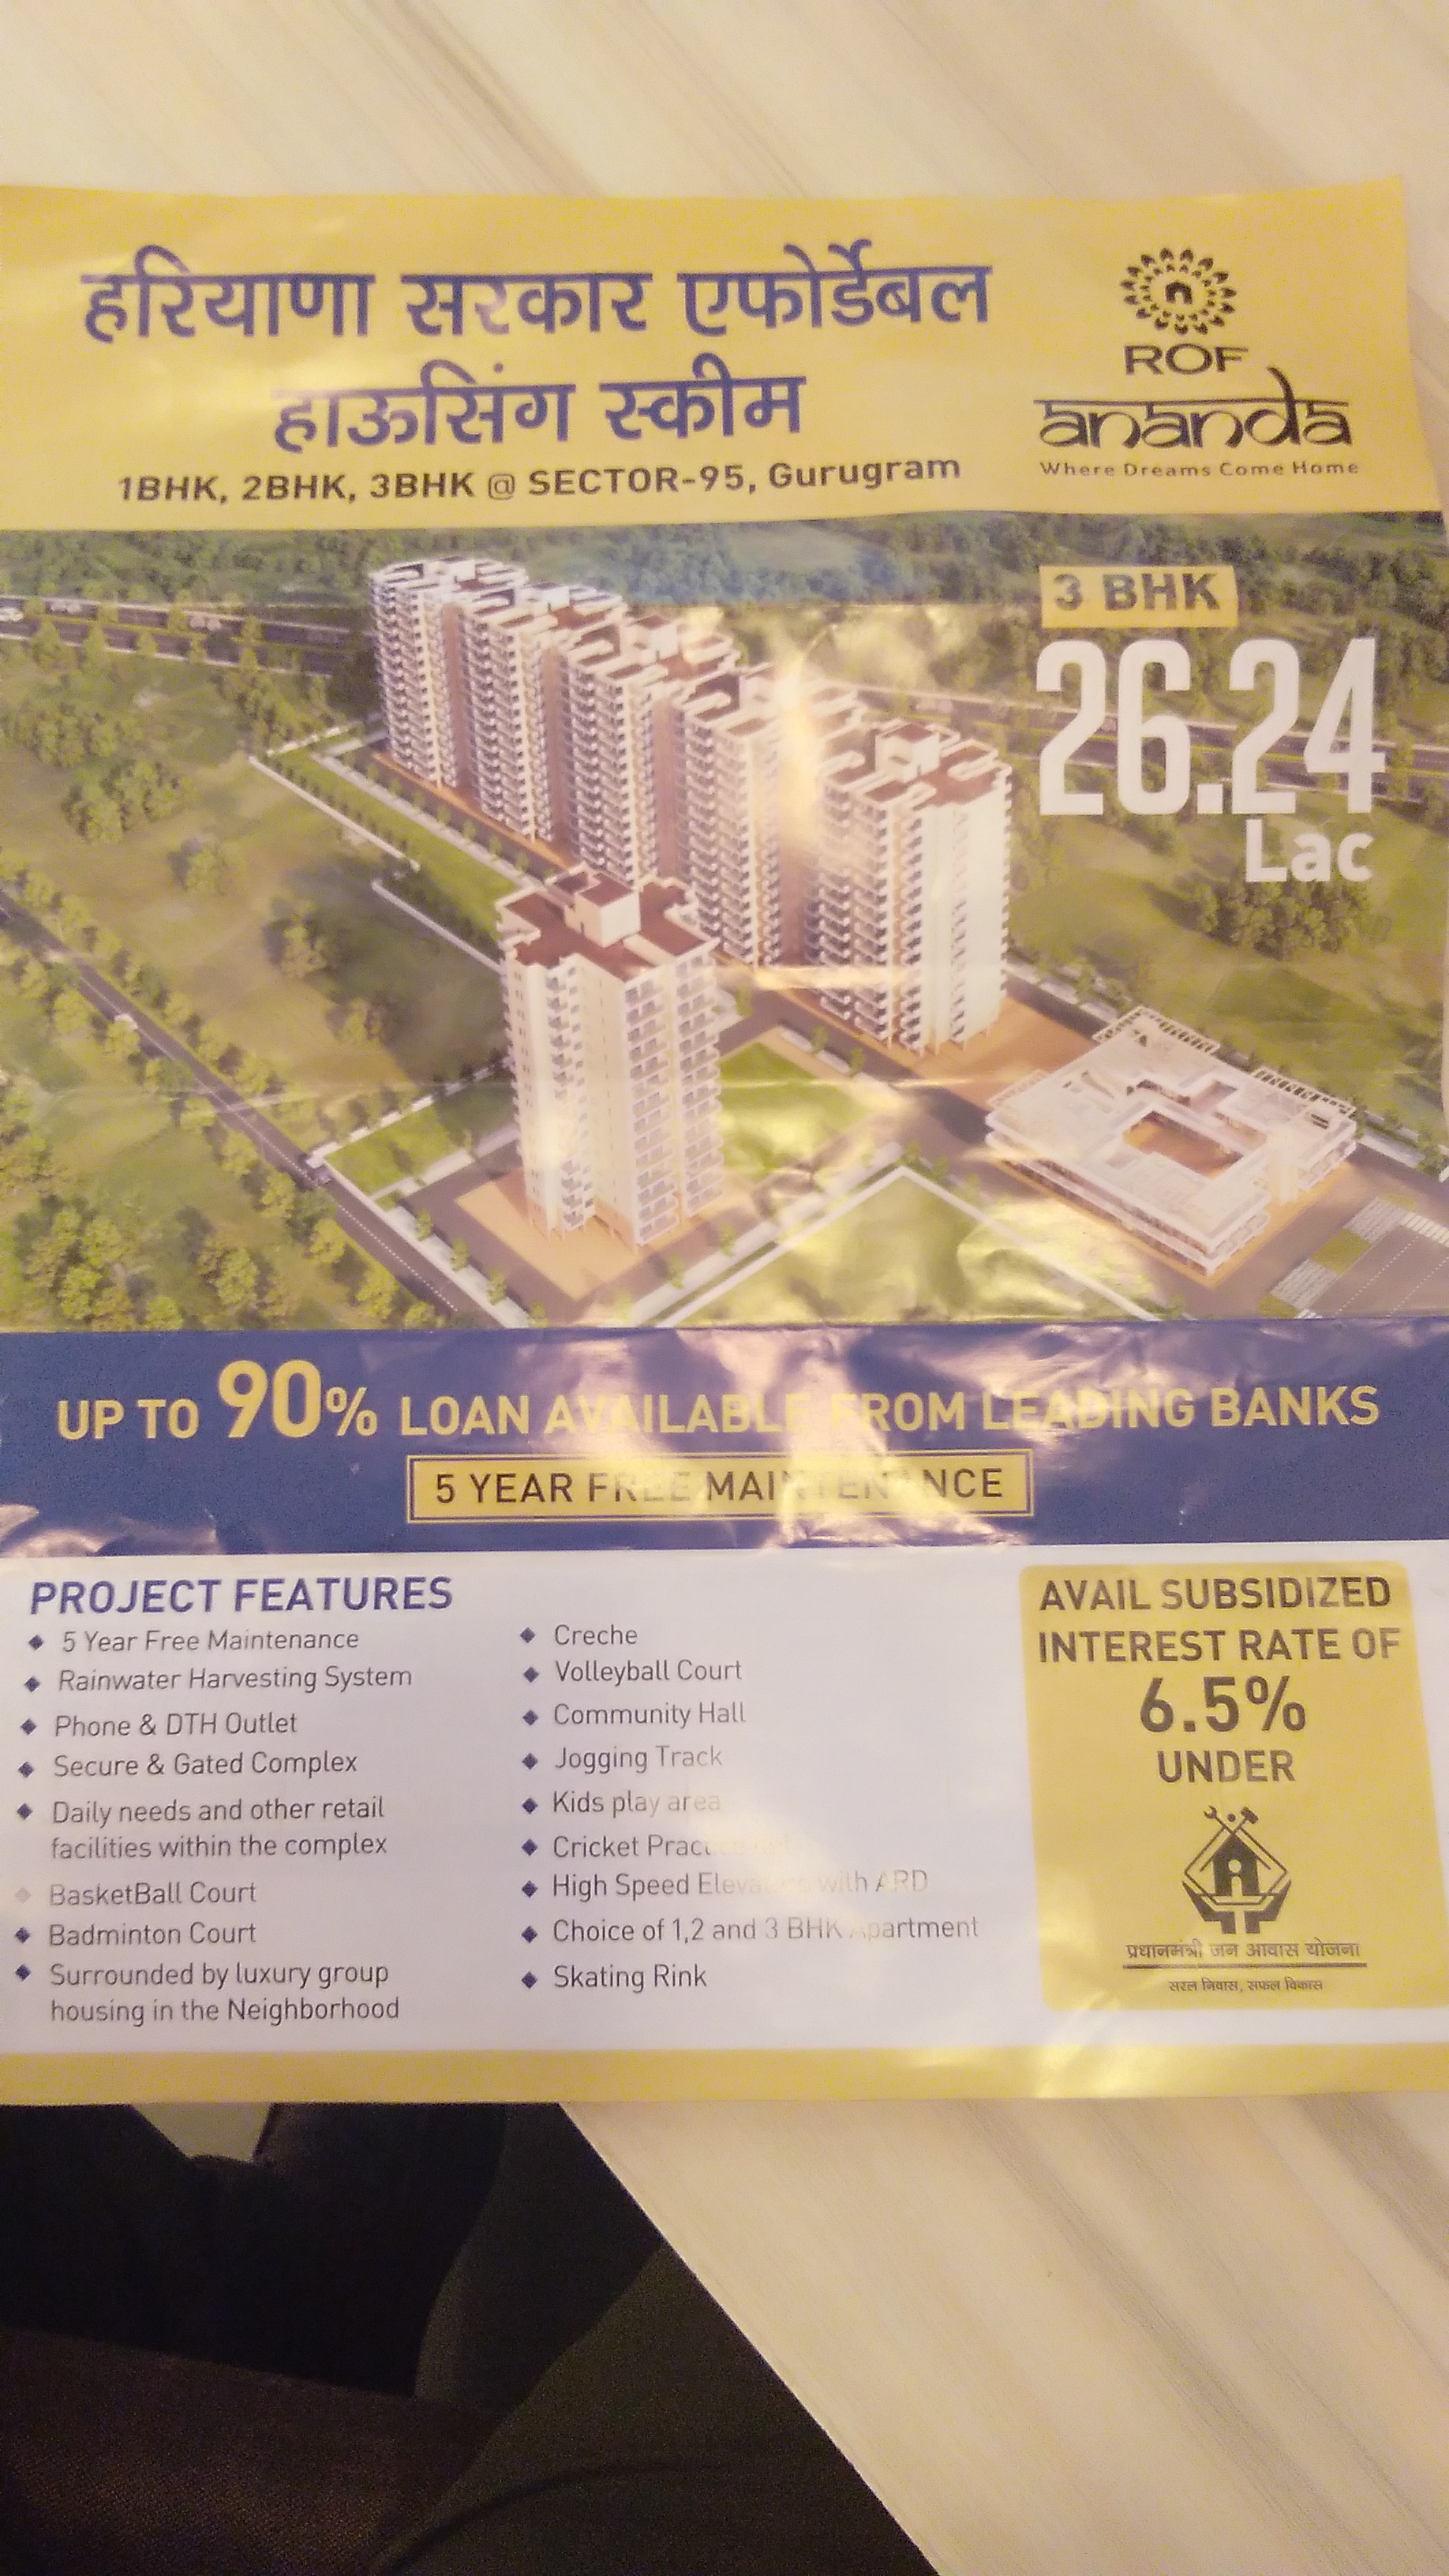 Affordable house Rof Ananda Sec-95